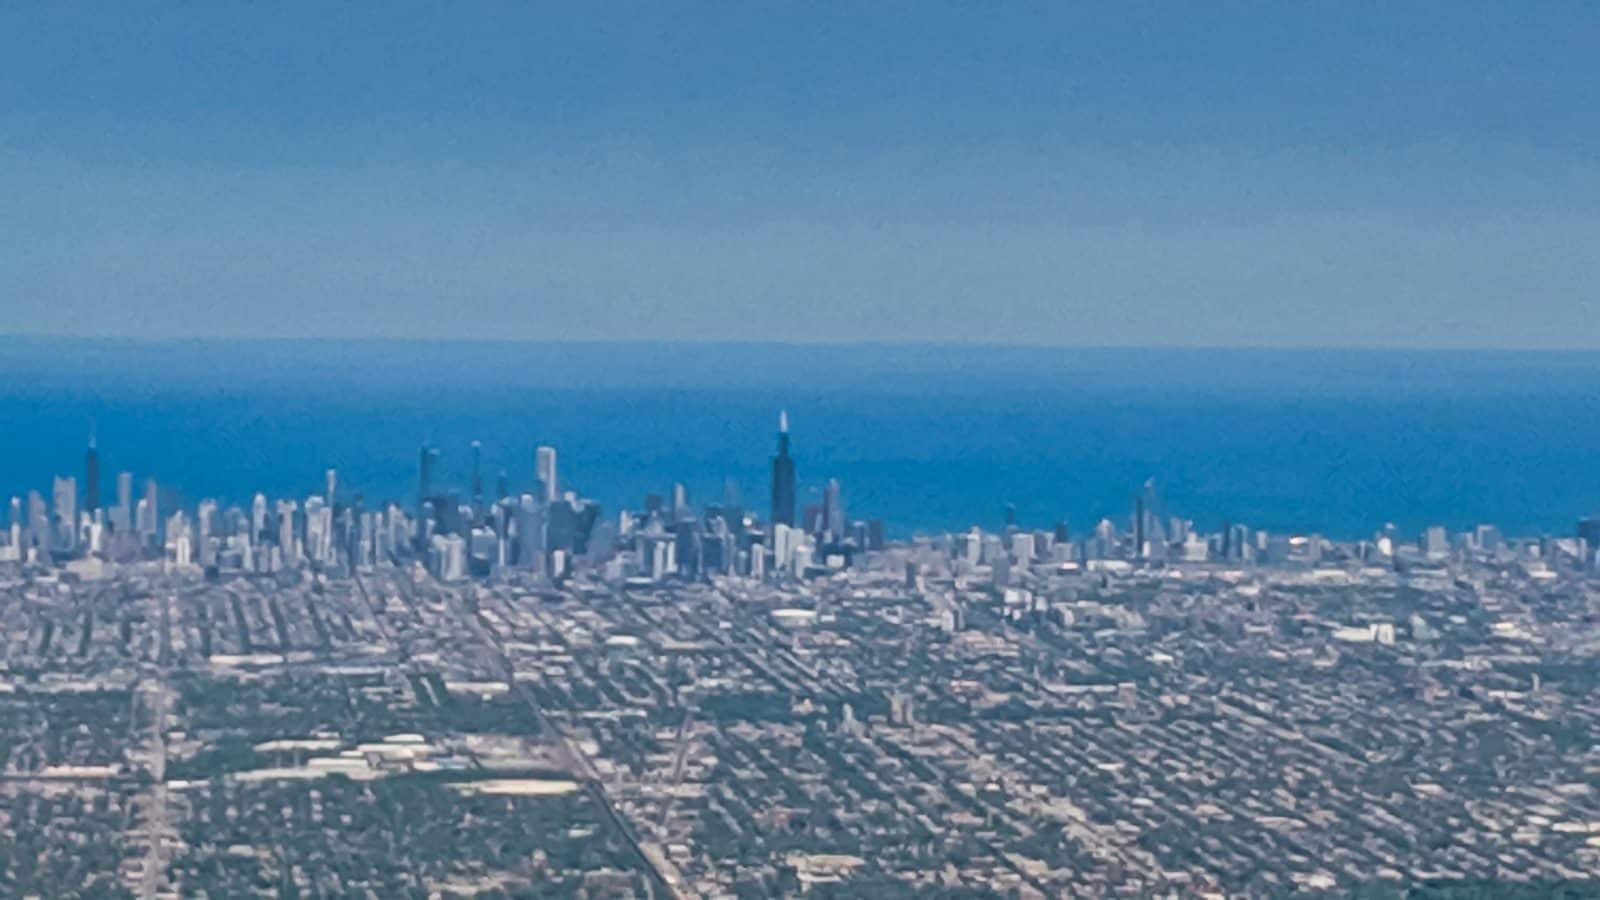 Chicago 2019 - Chicago Skyline from an airplane